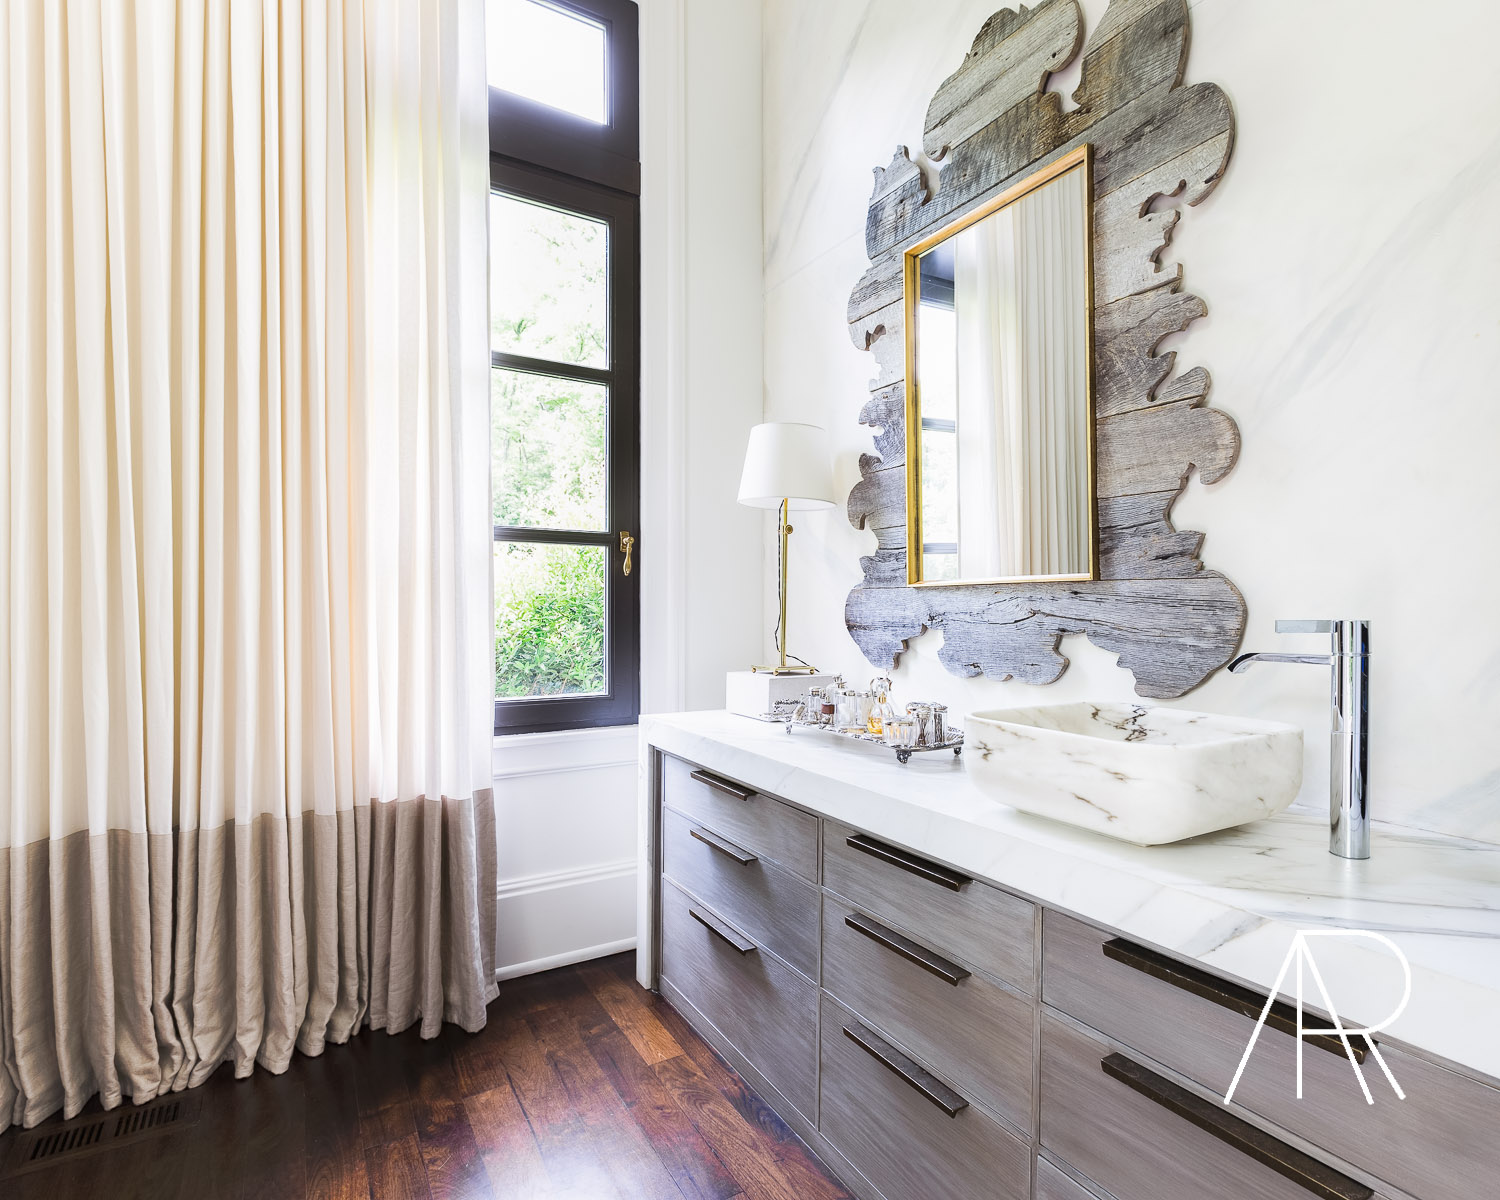 ©AlyssaRosenheck2015 Alyssa Rosenheck Interior Photography for Elle Decor